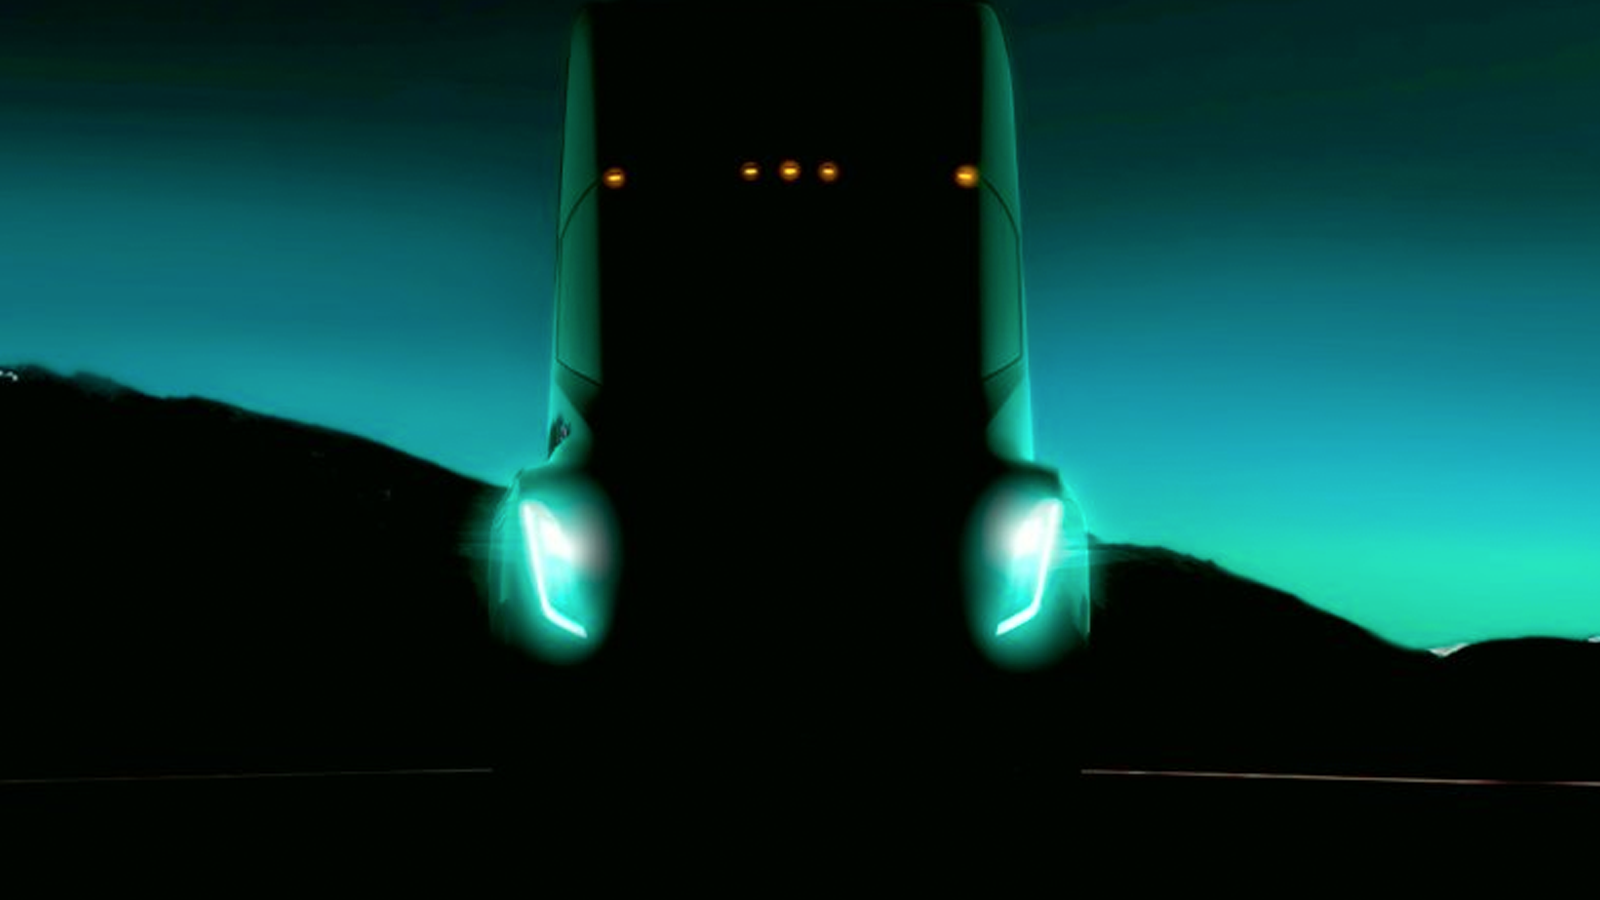 Billy Big Rigger! 'Platooning' Self-Driving E-Trucks Next on Tesla's List